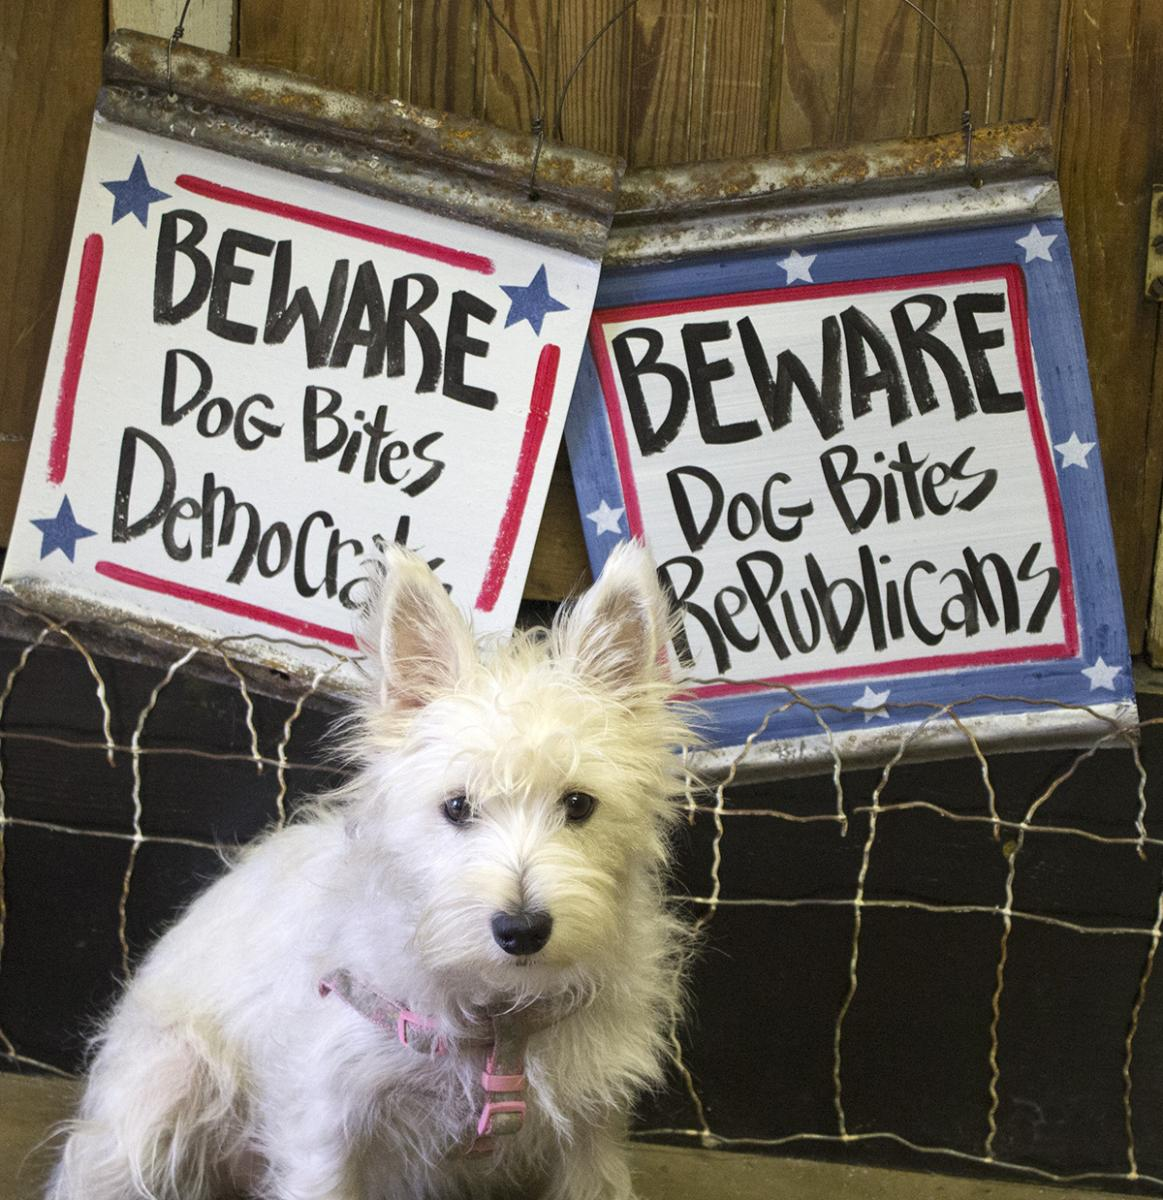 Beware - Dog bites Democrats!